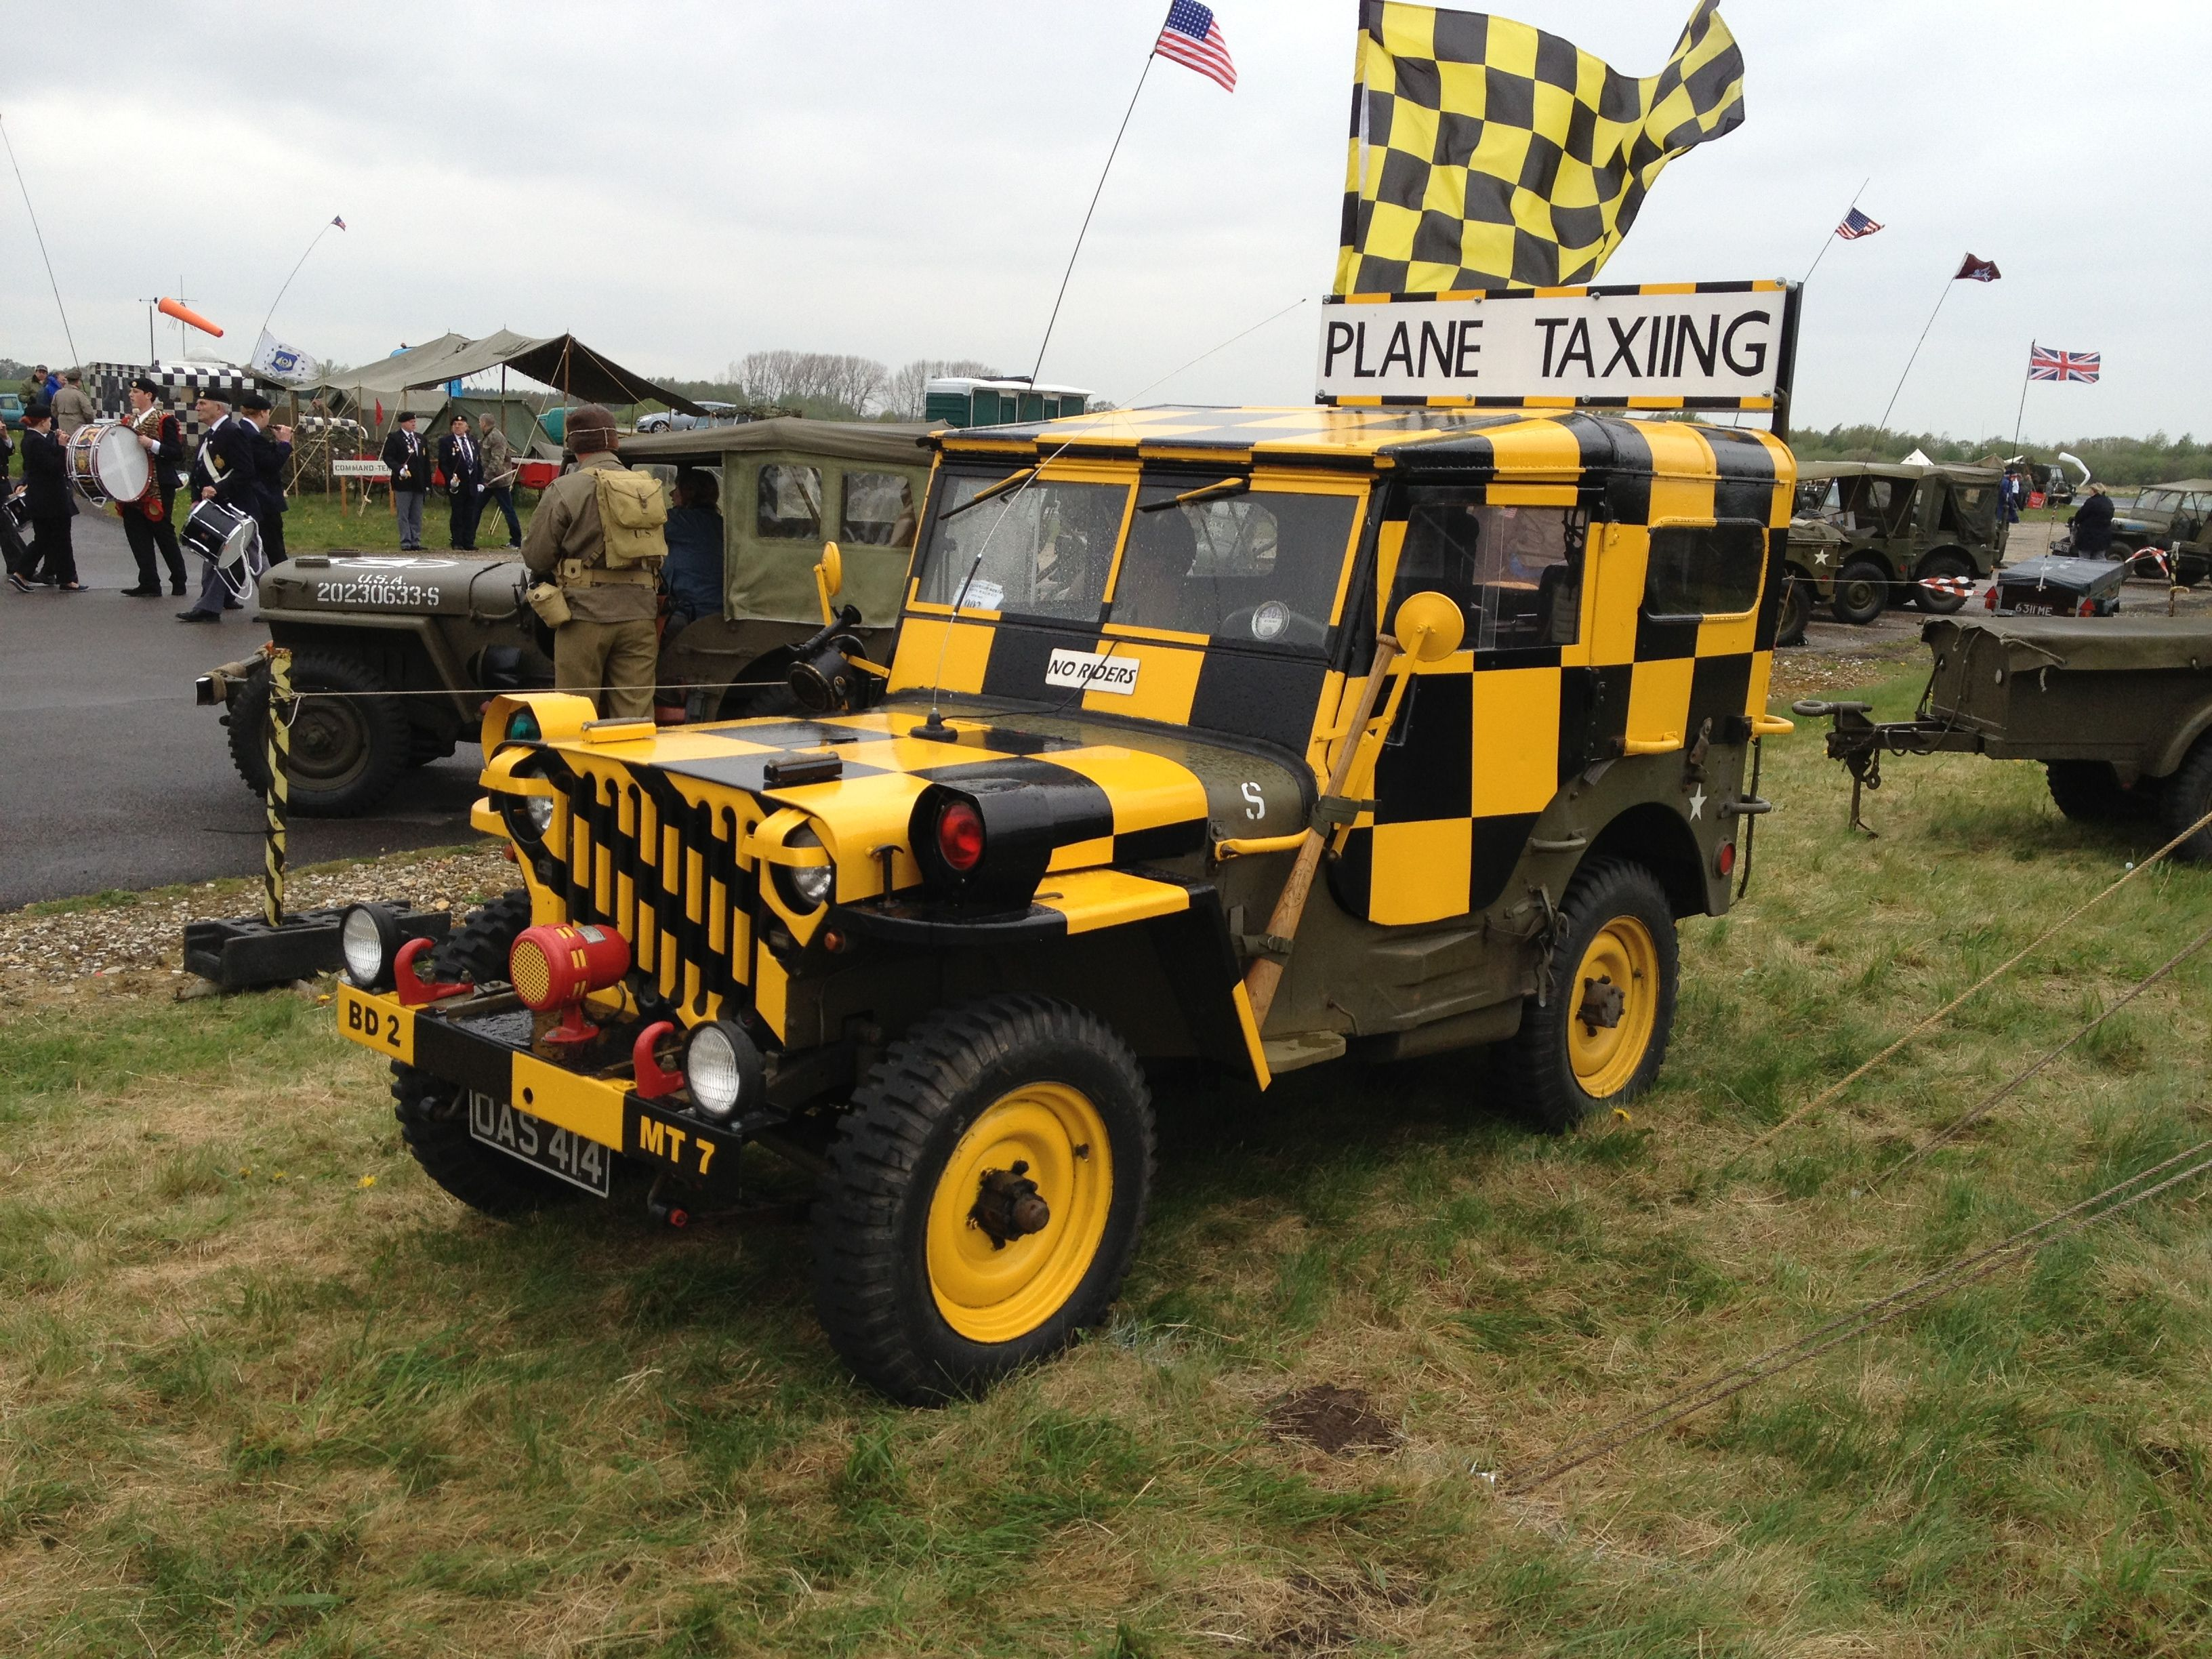 Follow Me Airport Jeep At Yorkshire Air Museum Jeep Monster Trucks Wwii